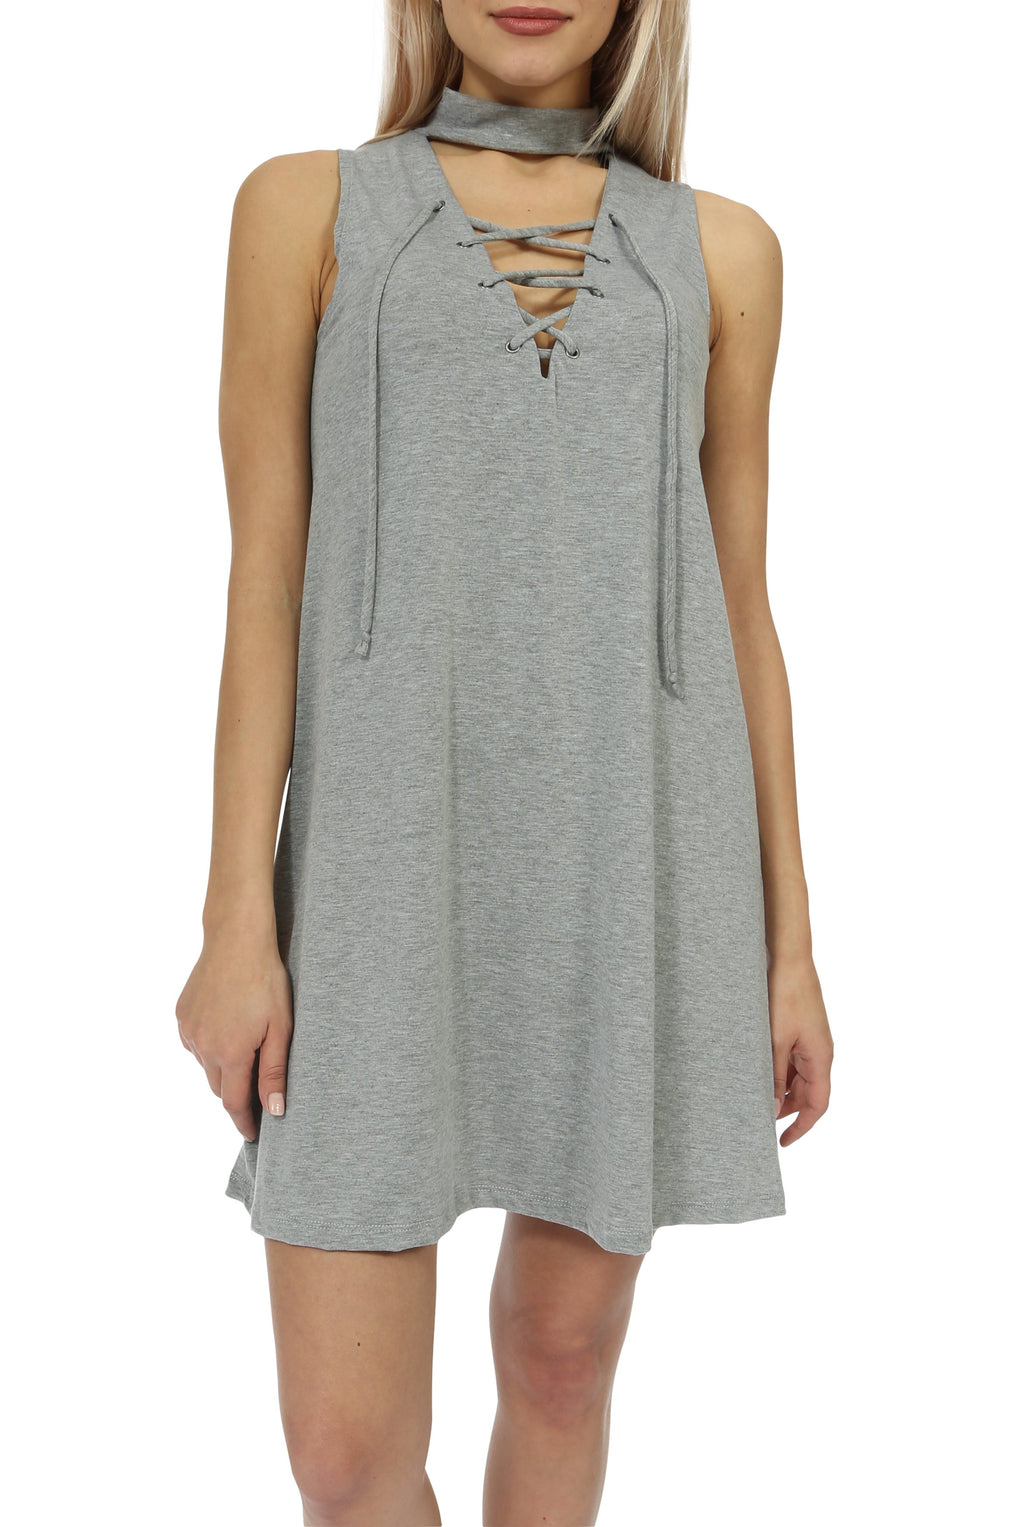 Teeze Me | Sleeveless Mock Neck Lace-Up Shift Dress | Heather Grey